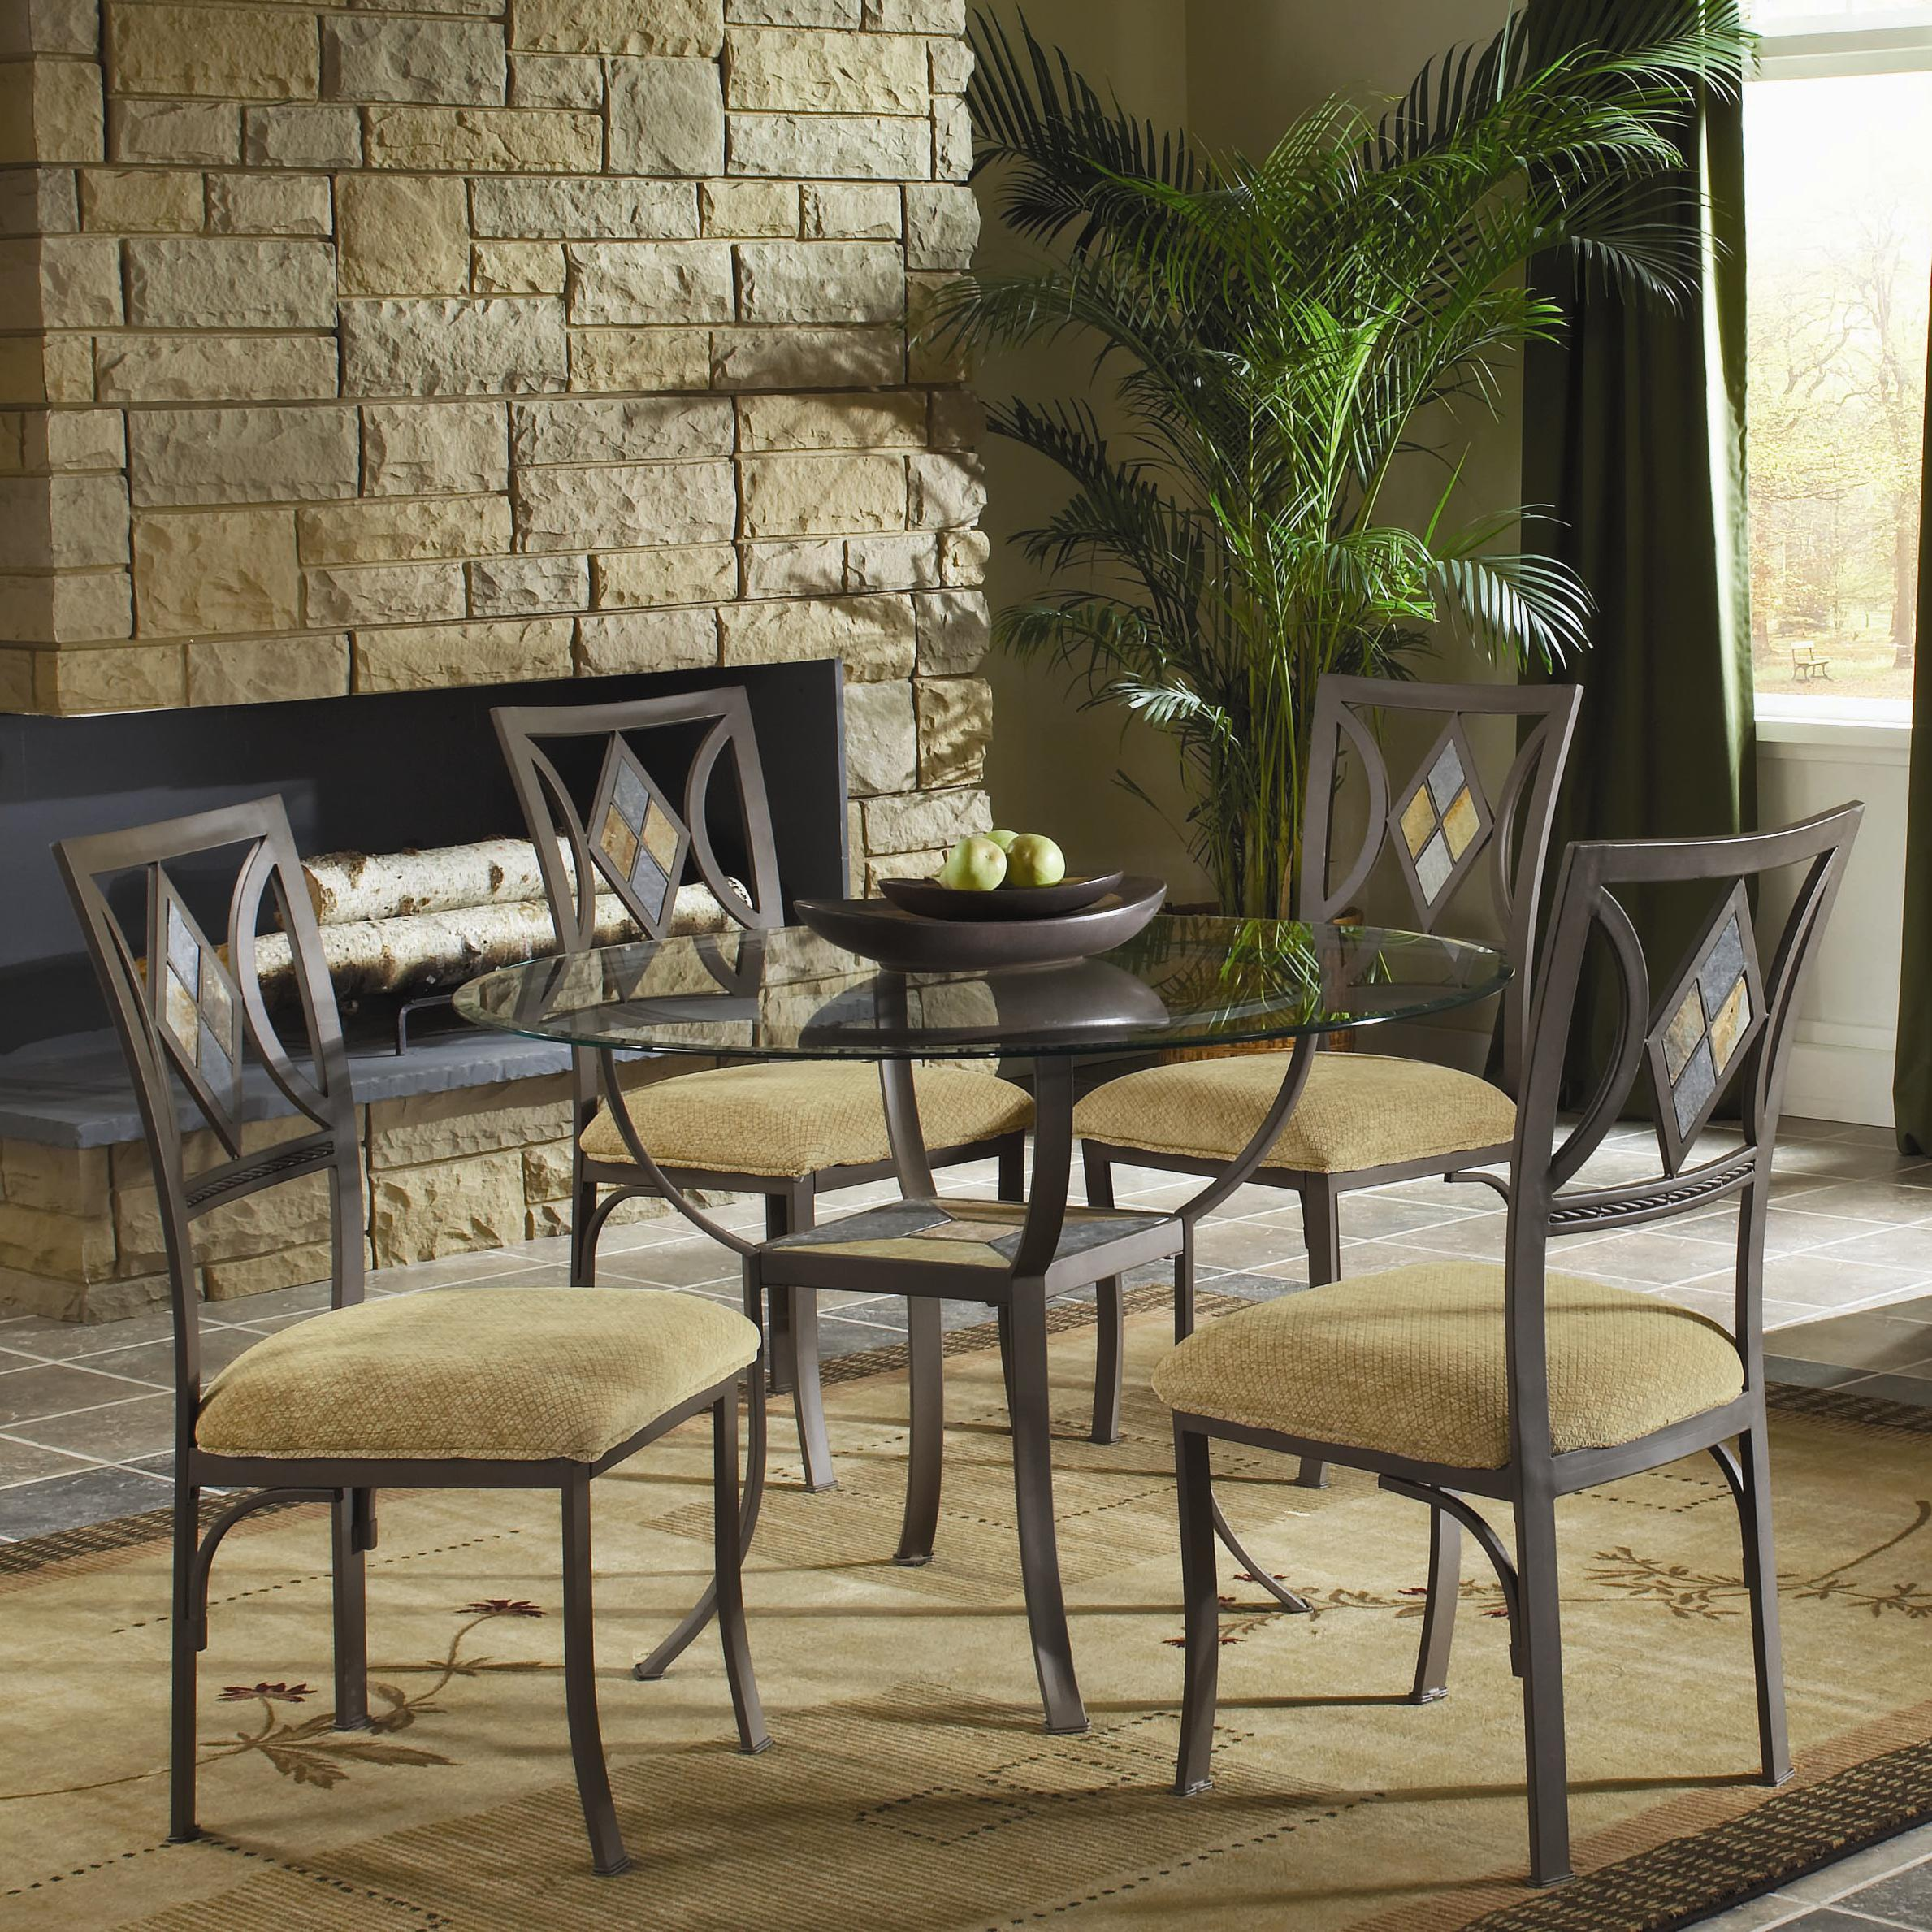 bernards diamond tile 5 piece 45 round bevel glass top table with metal base 4 chairs. Black Bedroom Furniture Sets. Home Design Ideas